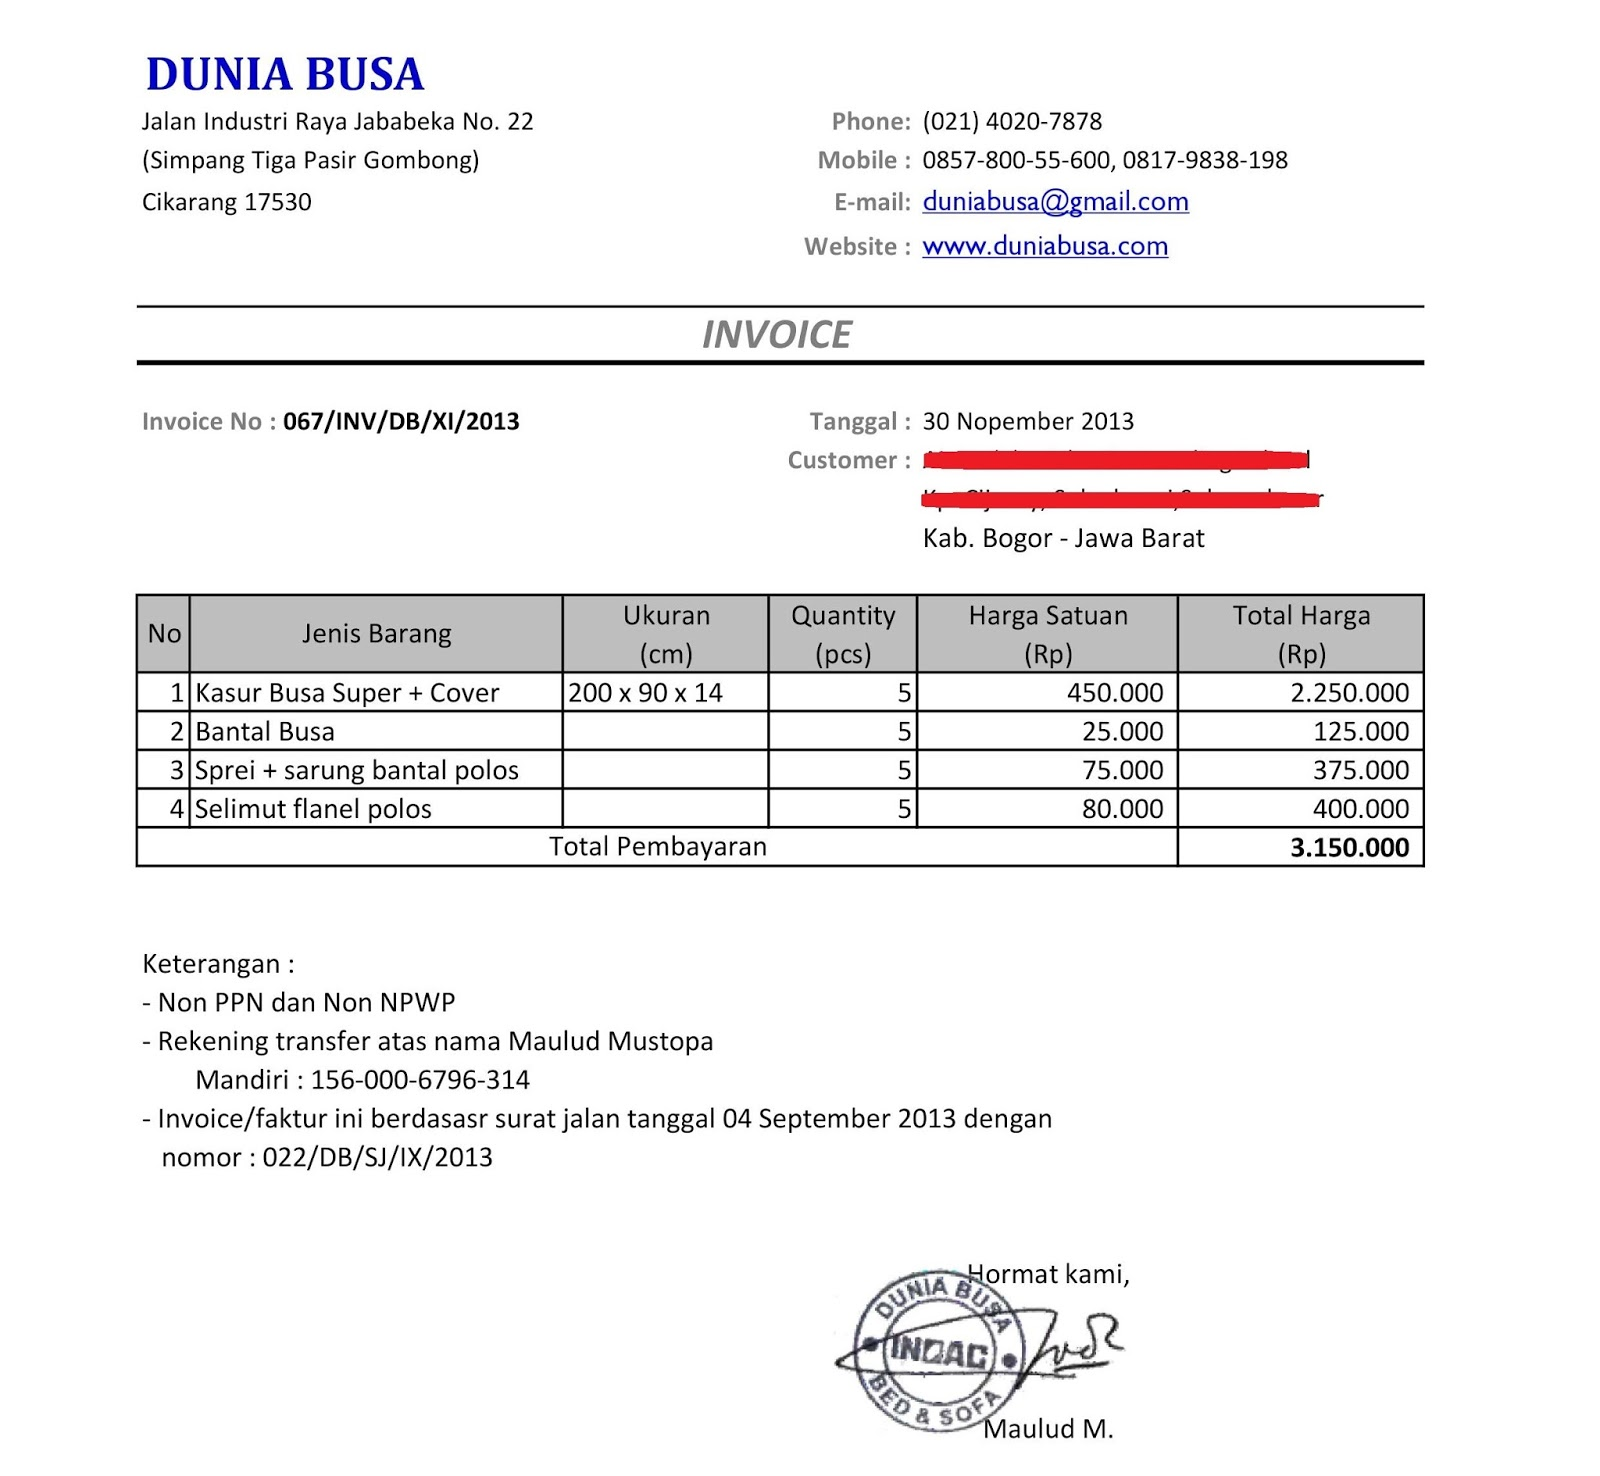 Usdgus  Wonderful Free Invoice Online  Create Invoice Online  Invoice Template  With Hot Contoh Format Invoice Atau Surat Tagihan  Brankas Arsip  Free Invoice Online With Archaic Invoice Proforma Also Sample Construction Invoice In Addition Billing And Invoicing And Printing Invoices As Well As Software For Invoices Additionally Sponsorship Invoice Template From Sklepco With Usdgus  Hot Free Invoice Online  Create Invoice Online  Invoice Template  With Archaic Contoh Format Invoice Atau Surat Tagihan  Brankas Arsip  Free Invoice Online And Wonderful Invoice Proforma Also Sample Construction Invoice In Addition Billing And Invoicing From Sklepco